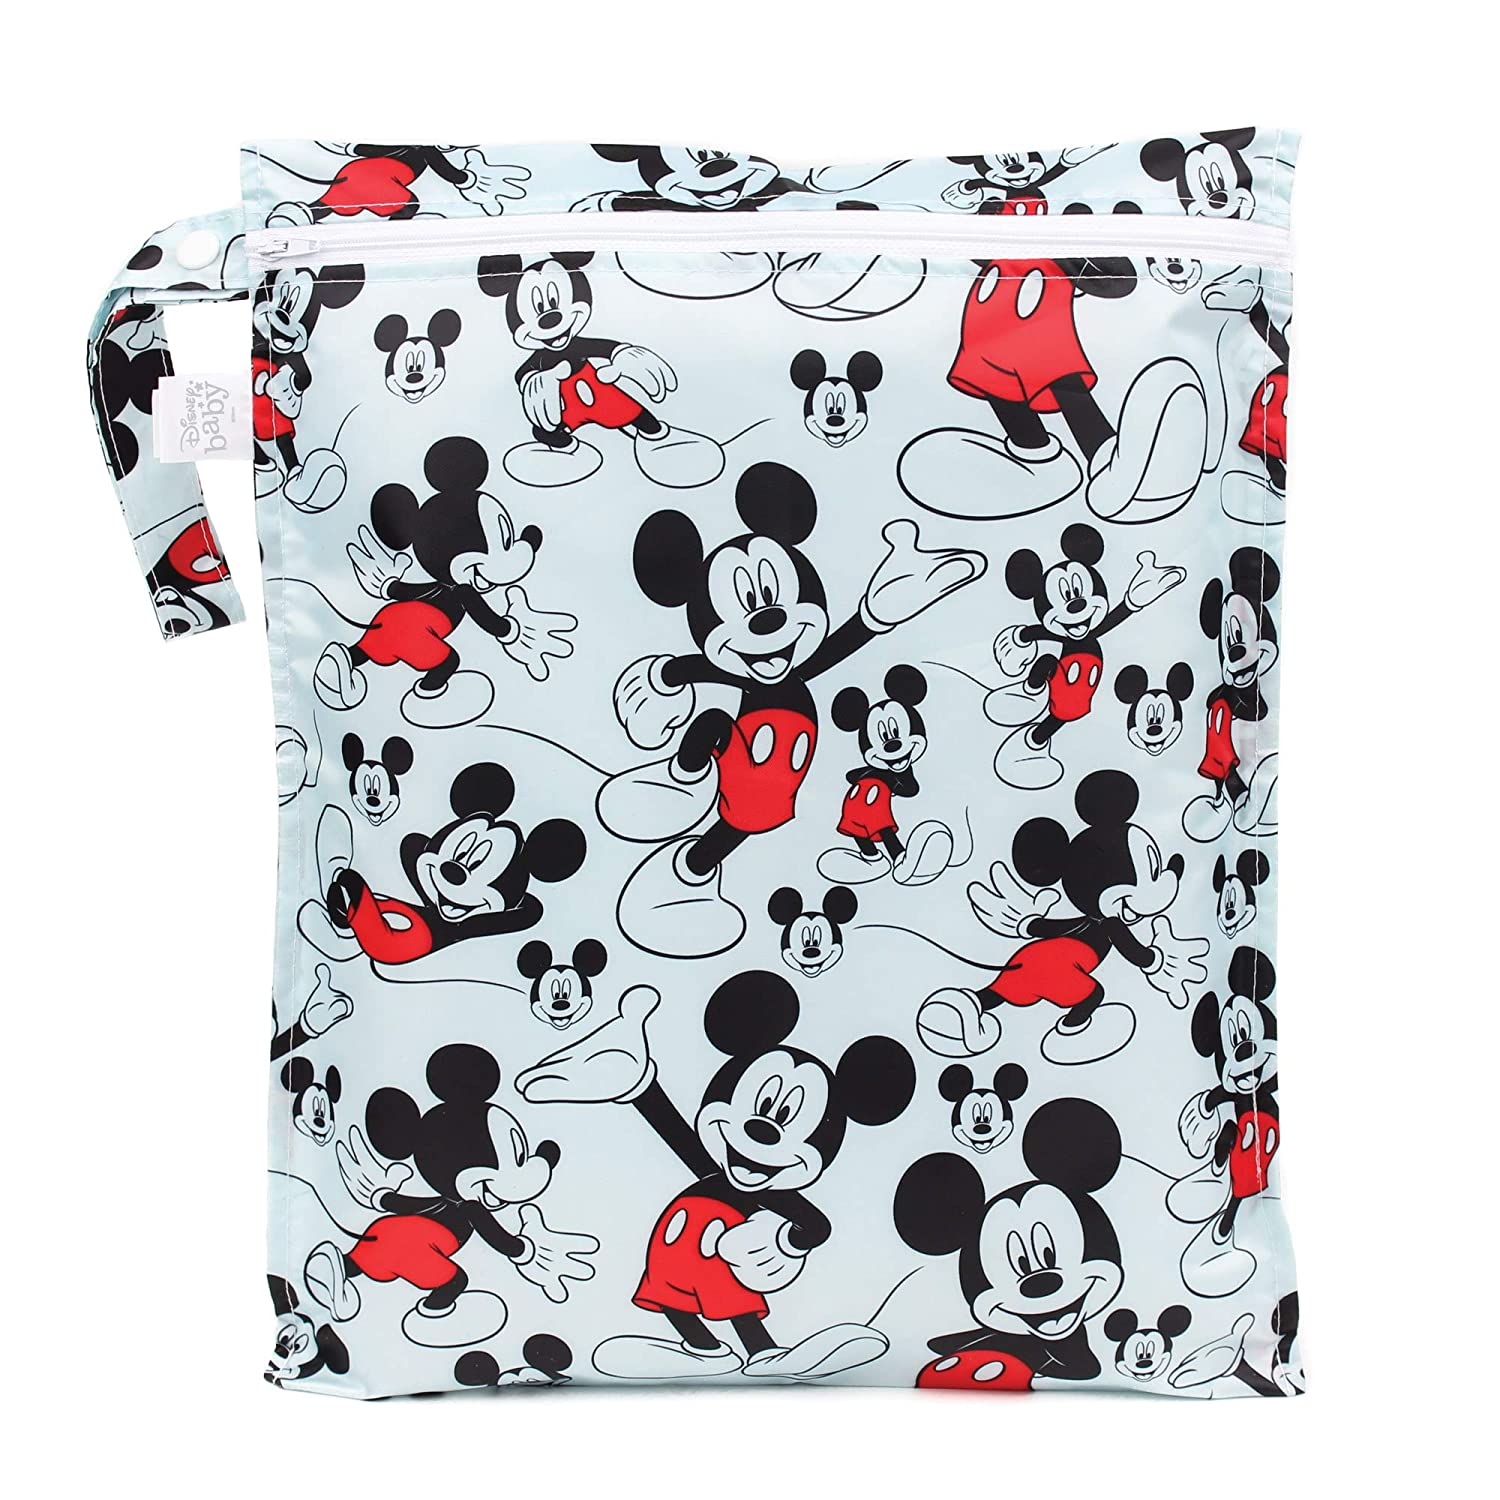 Bumkins Waterproof Wet Bag, Washable, Reusable for Travel, Beach, Pool, Stroller, Diapers, Dirty Gym Clothes, Wet Swimsuits, Toiletries, 12x14 – Disney Mickey Mouse